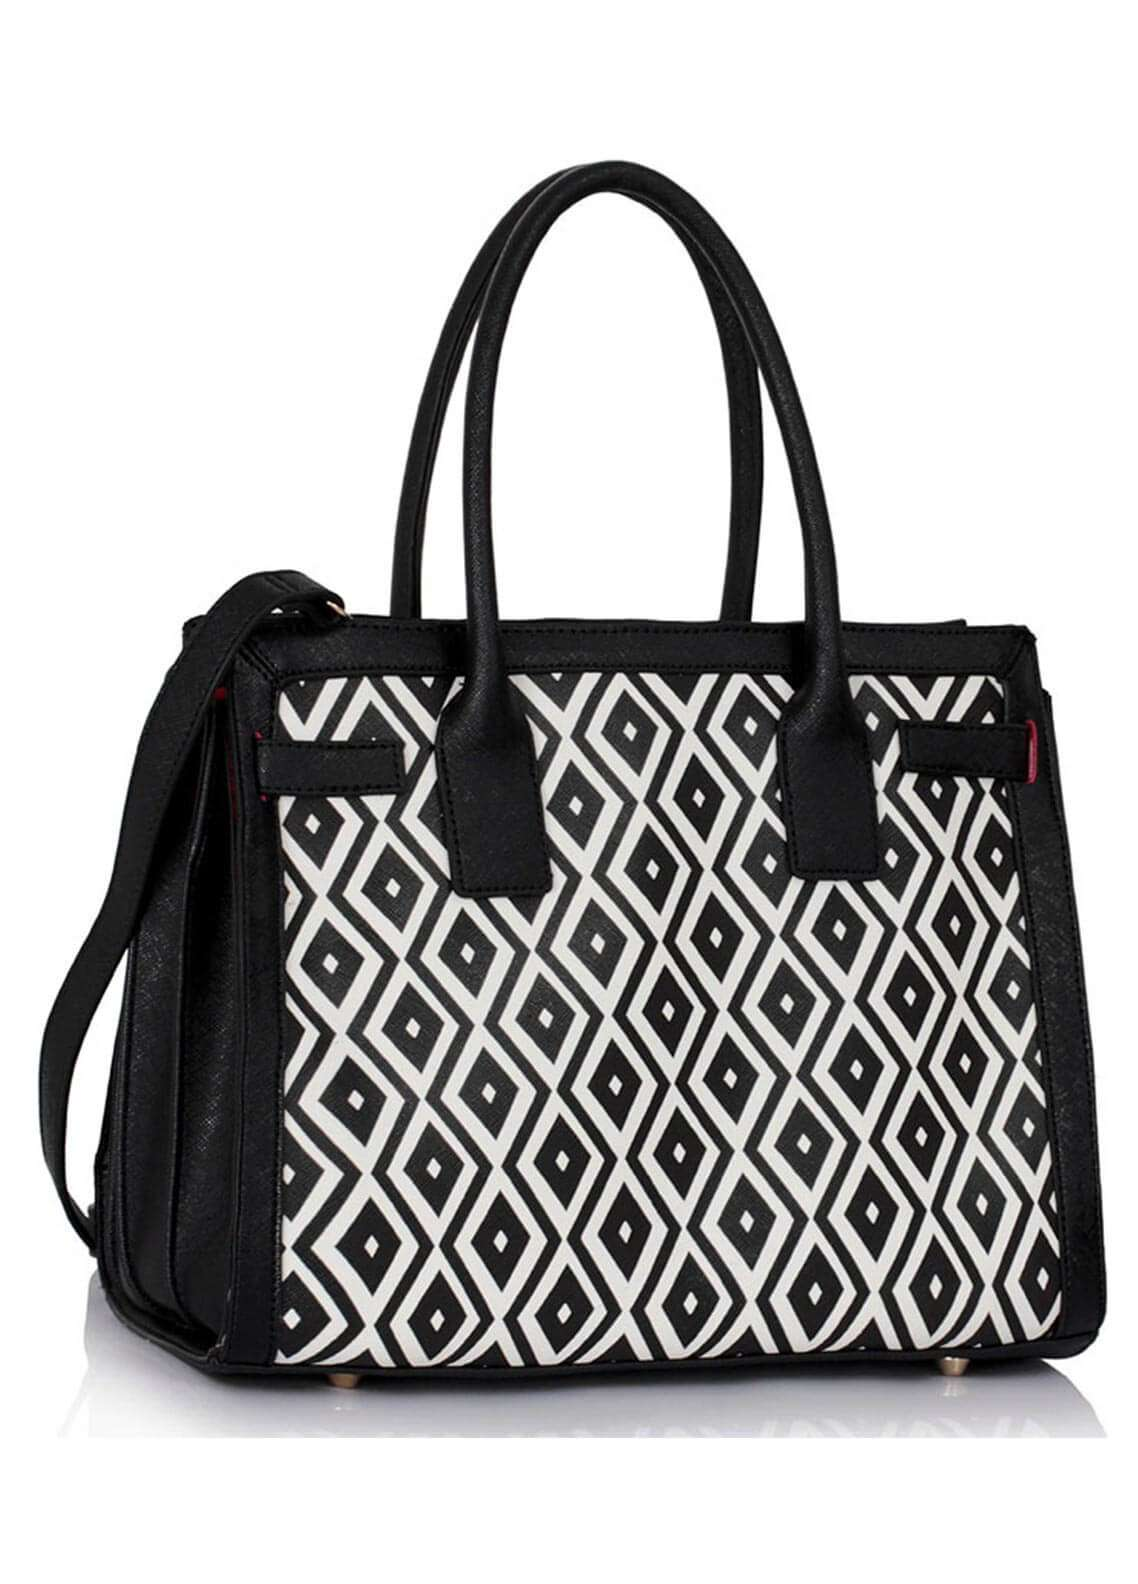 Fashion Only Faux Leather Tote  Bags for Woman - White